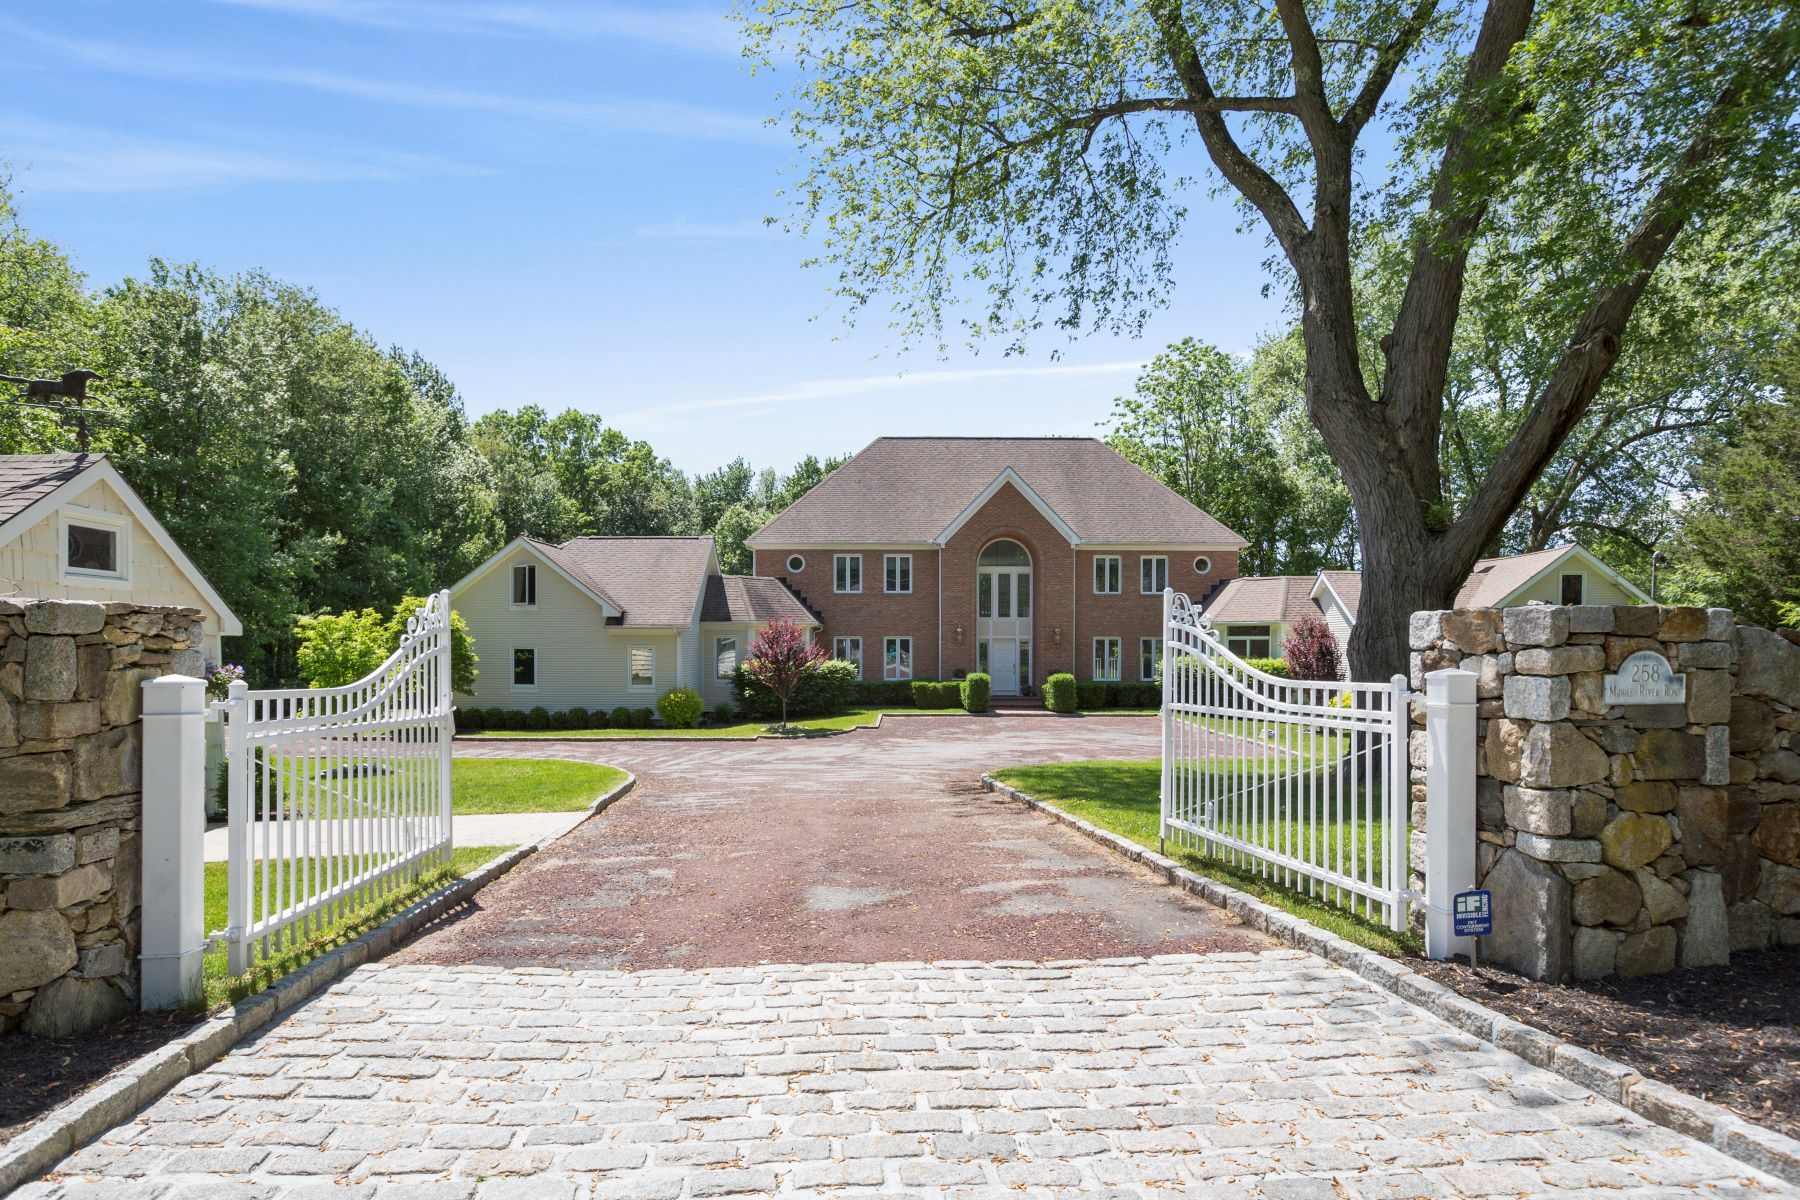 Single Family Homes for Sale at EXQUISITE CONTEMPORARY COLONIAL 256-258 Middle River Rd Danbury, Connecticut 06811 United States